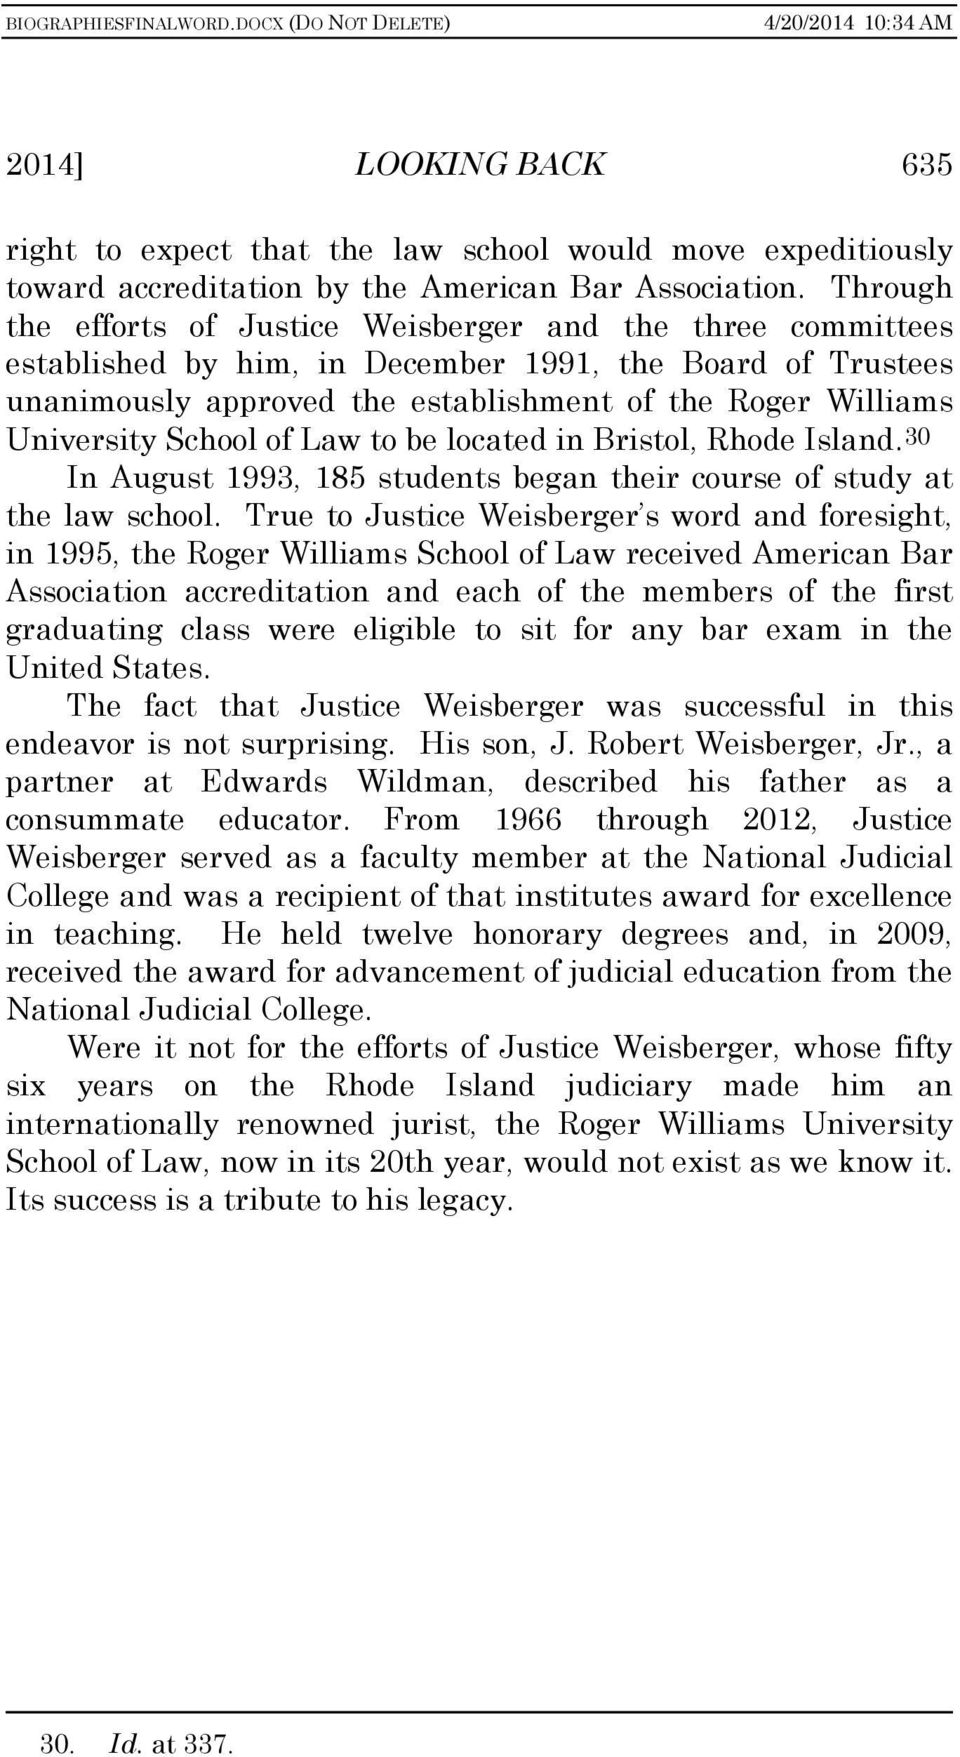 School of Law to be located in Bristol, Rhode Island. 30 In August 1993, 185 students began their course of study at the law school.